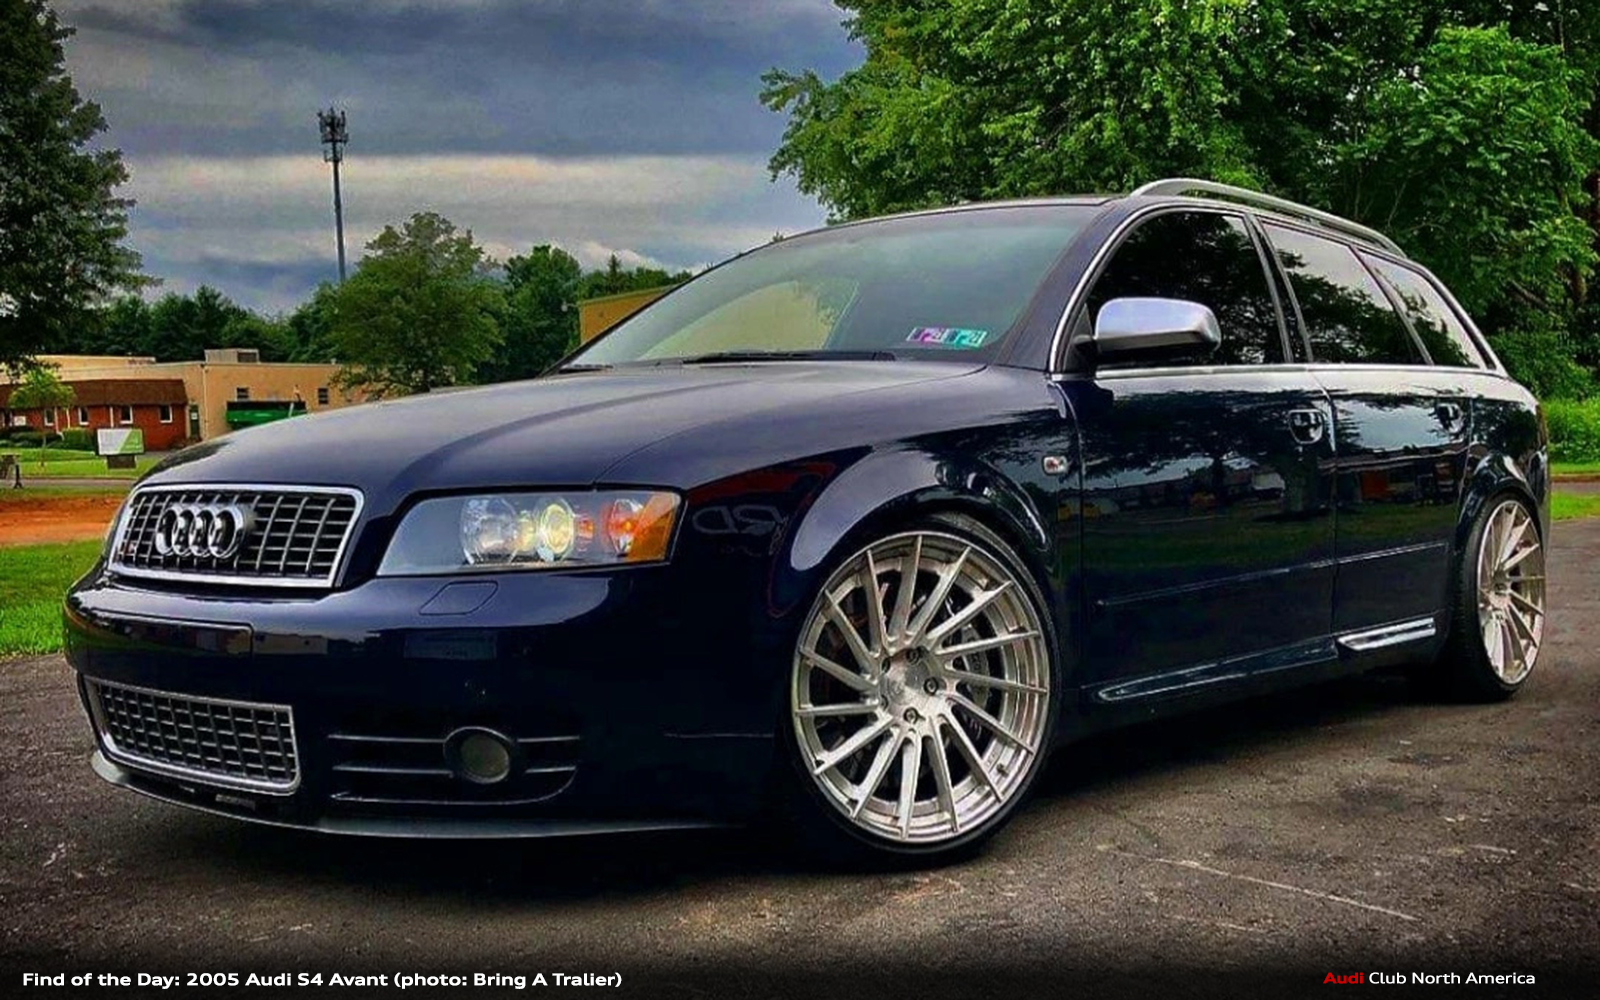 Find of the Day: 2005 Audi S4 Avant